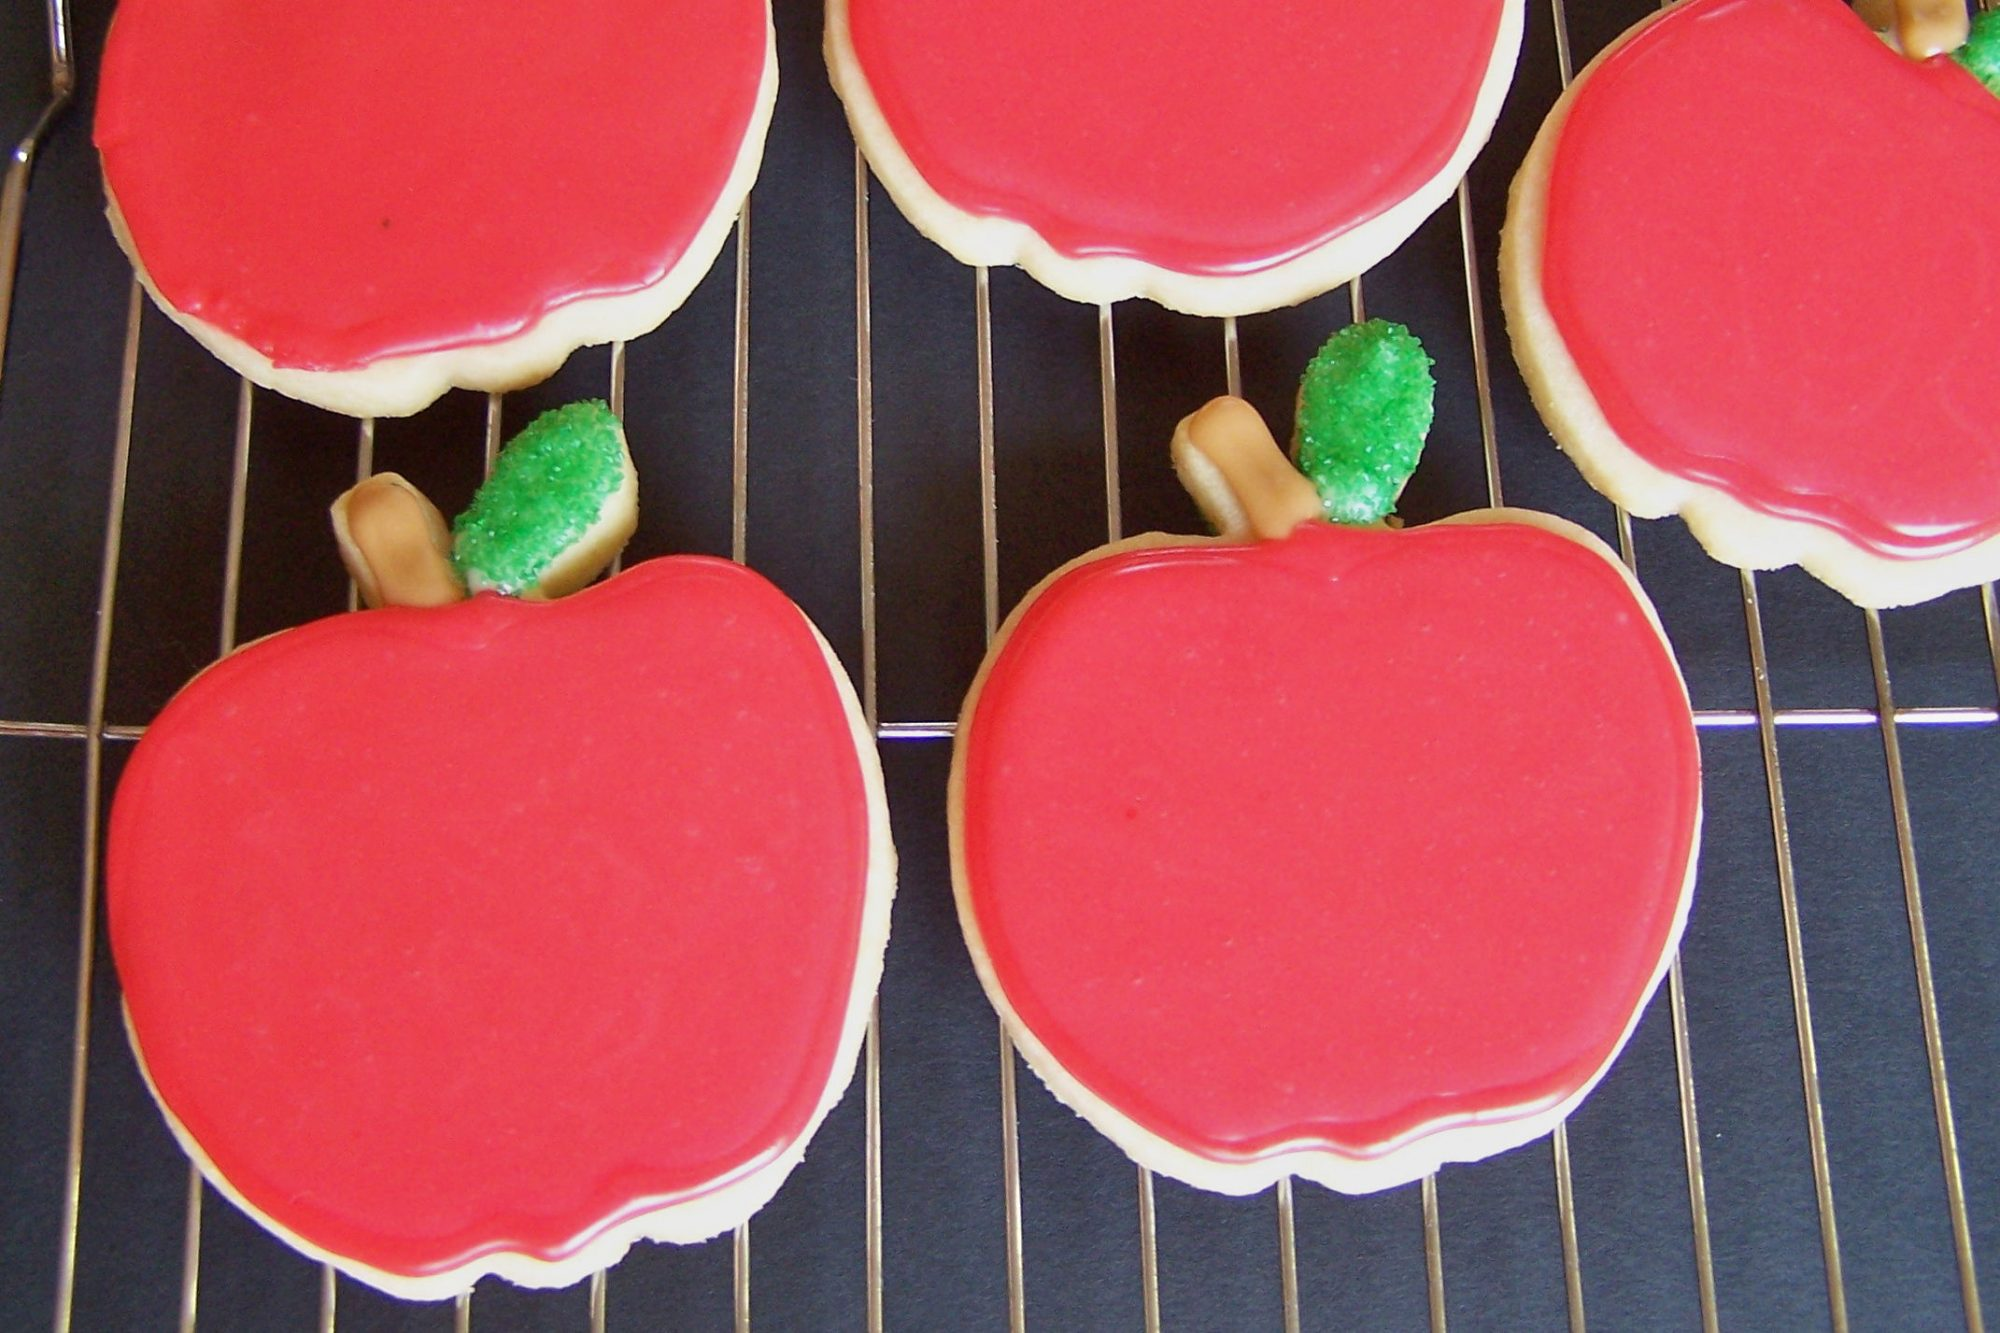 Apple-shaped cookies with red icing and green leaves